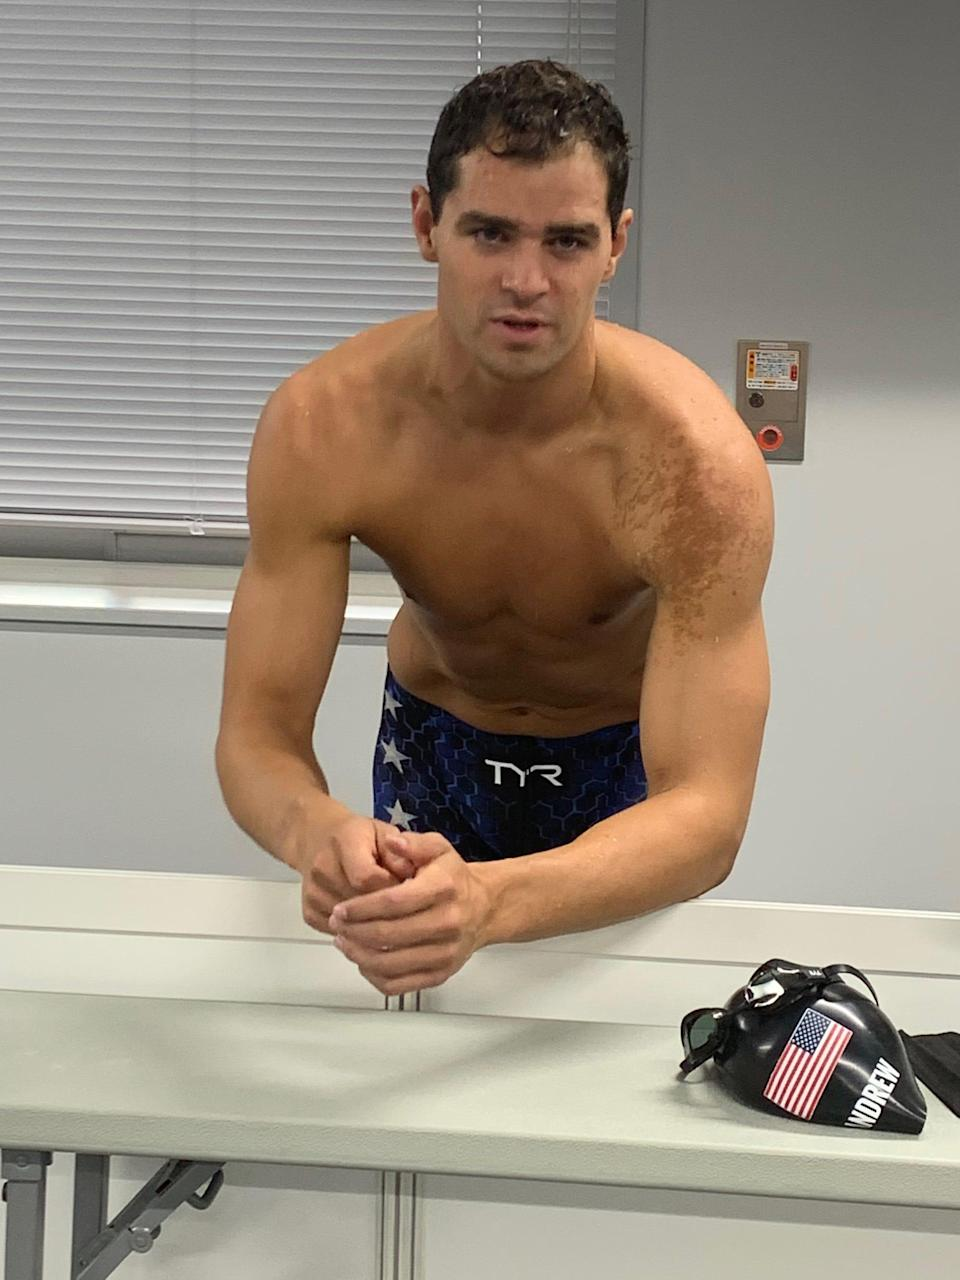 Swimmer Michael Andrew (USA), the highest profile unvaccinated American Olympian, refused to wear a mask in the mixed zone.